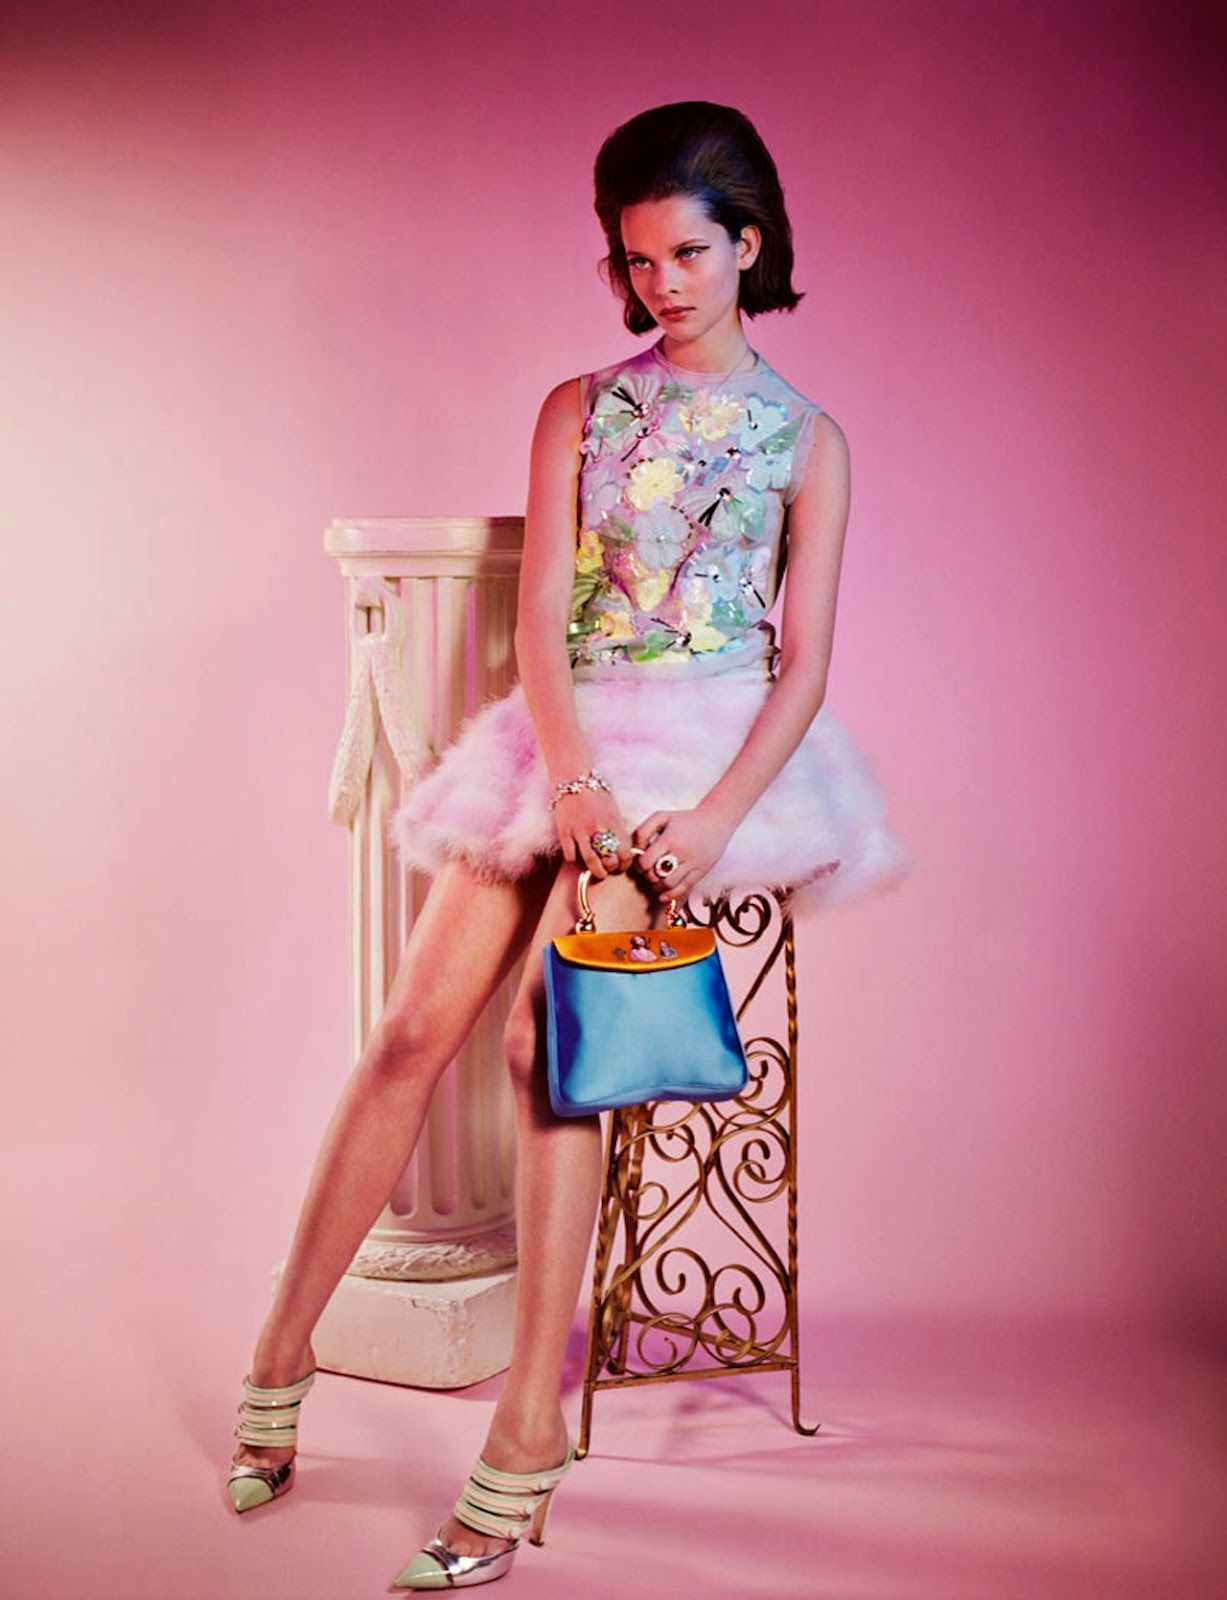 visual optimism; fashion editorials, shows, campaigns & more!: anouk de heer by mark kean for wonderland february/march 2012